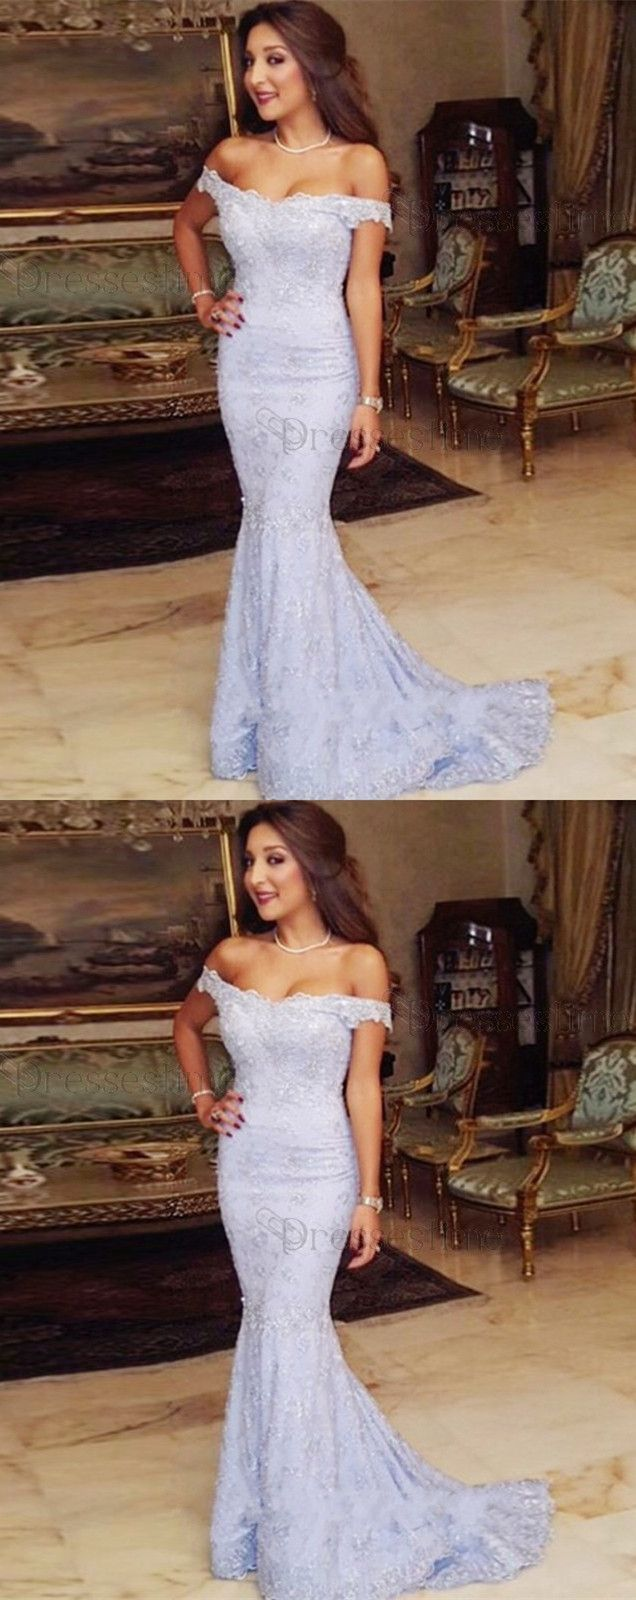 elegant blue prom party dresses with appliques, fashion formal evening gowns for special occasion, #dresses #partydress